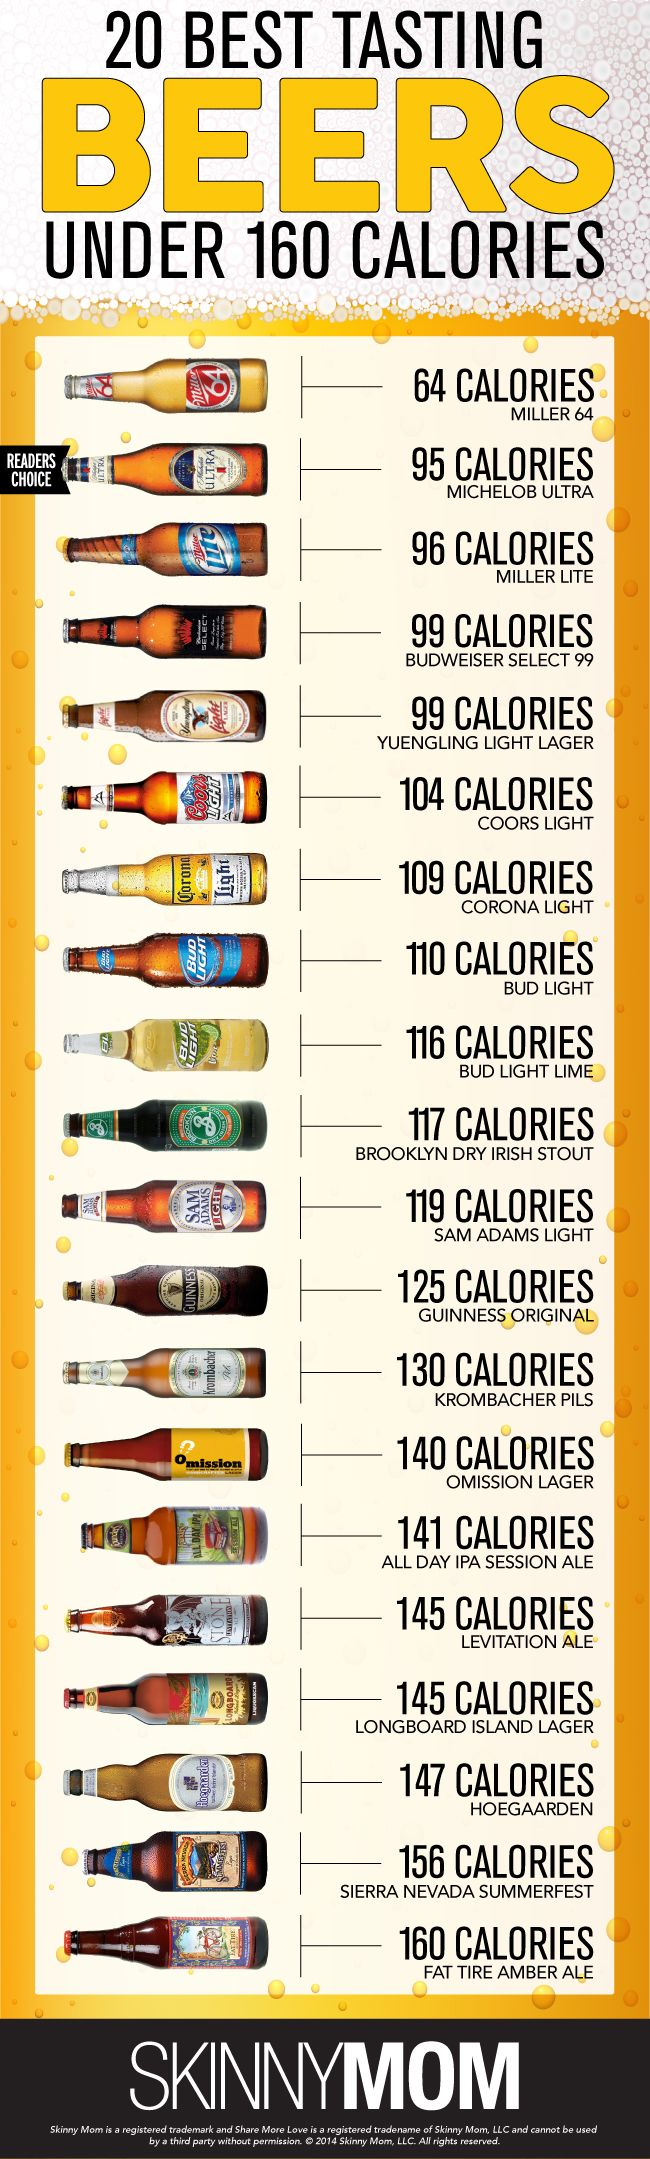 Now you can enjoy your beer without packing on the pounds. Here are the best 20 low-calorie beers for you!